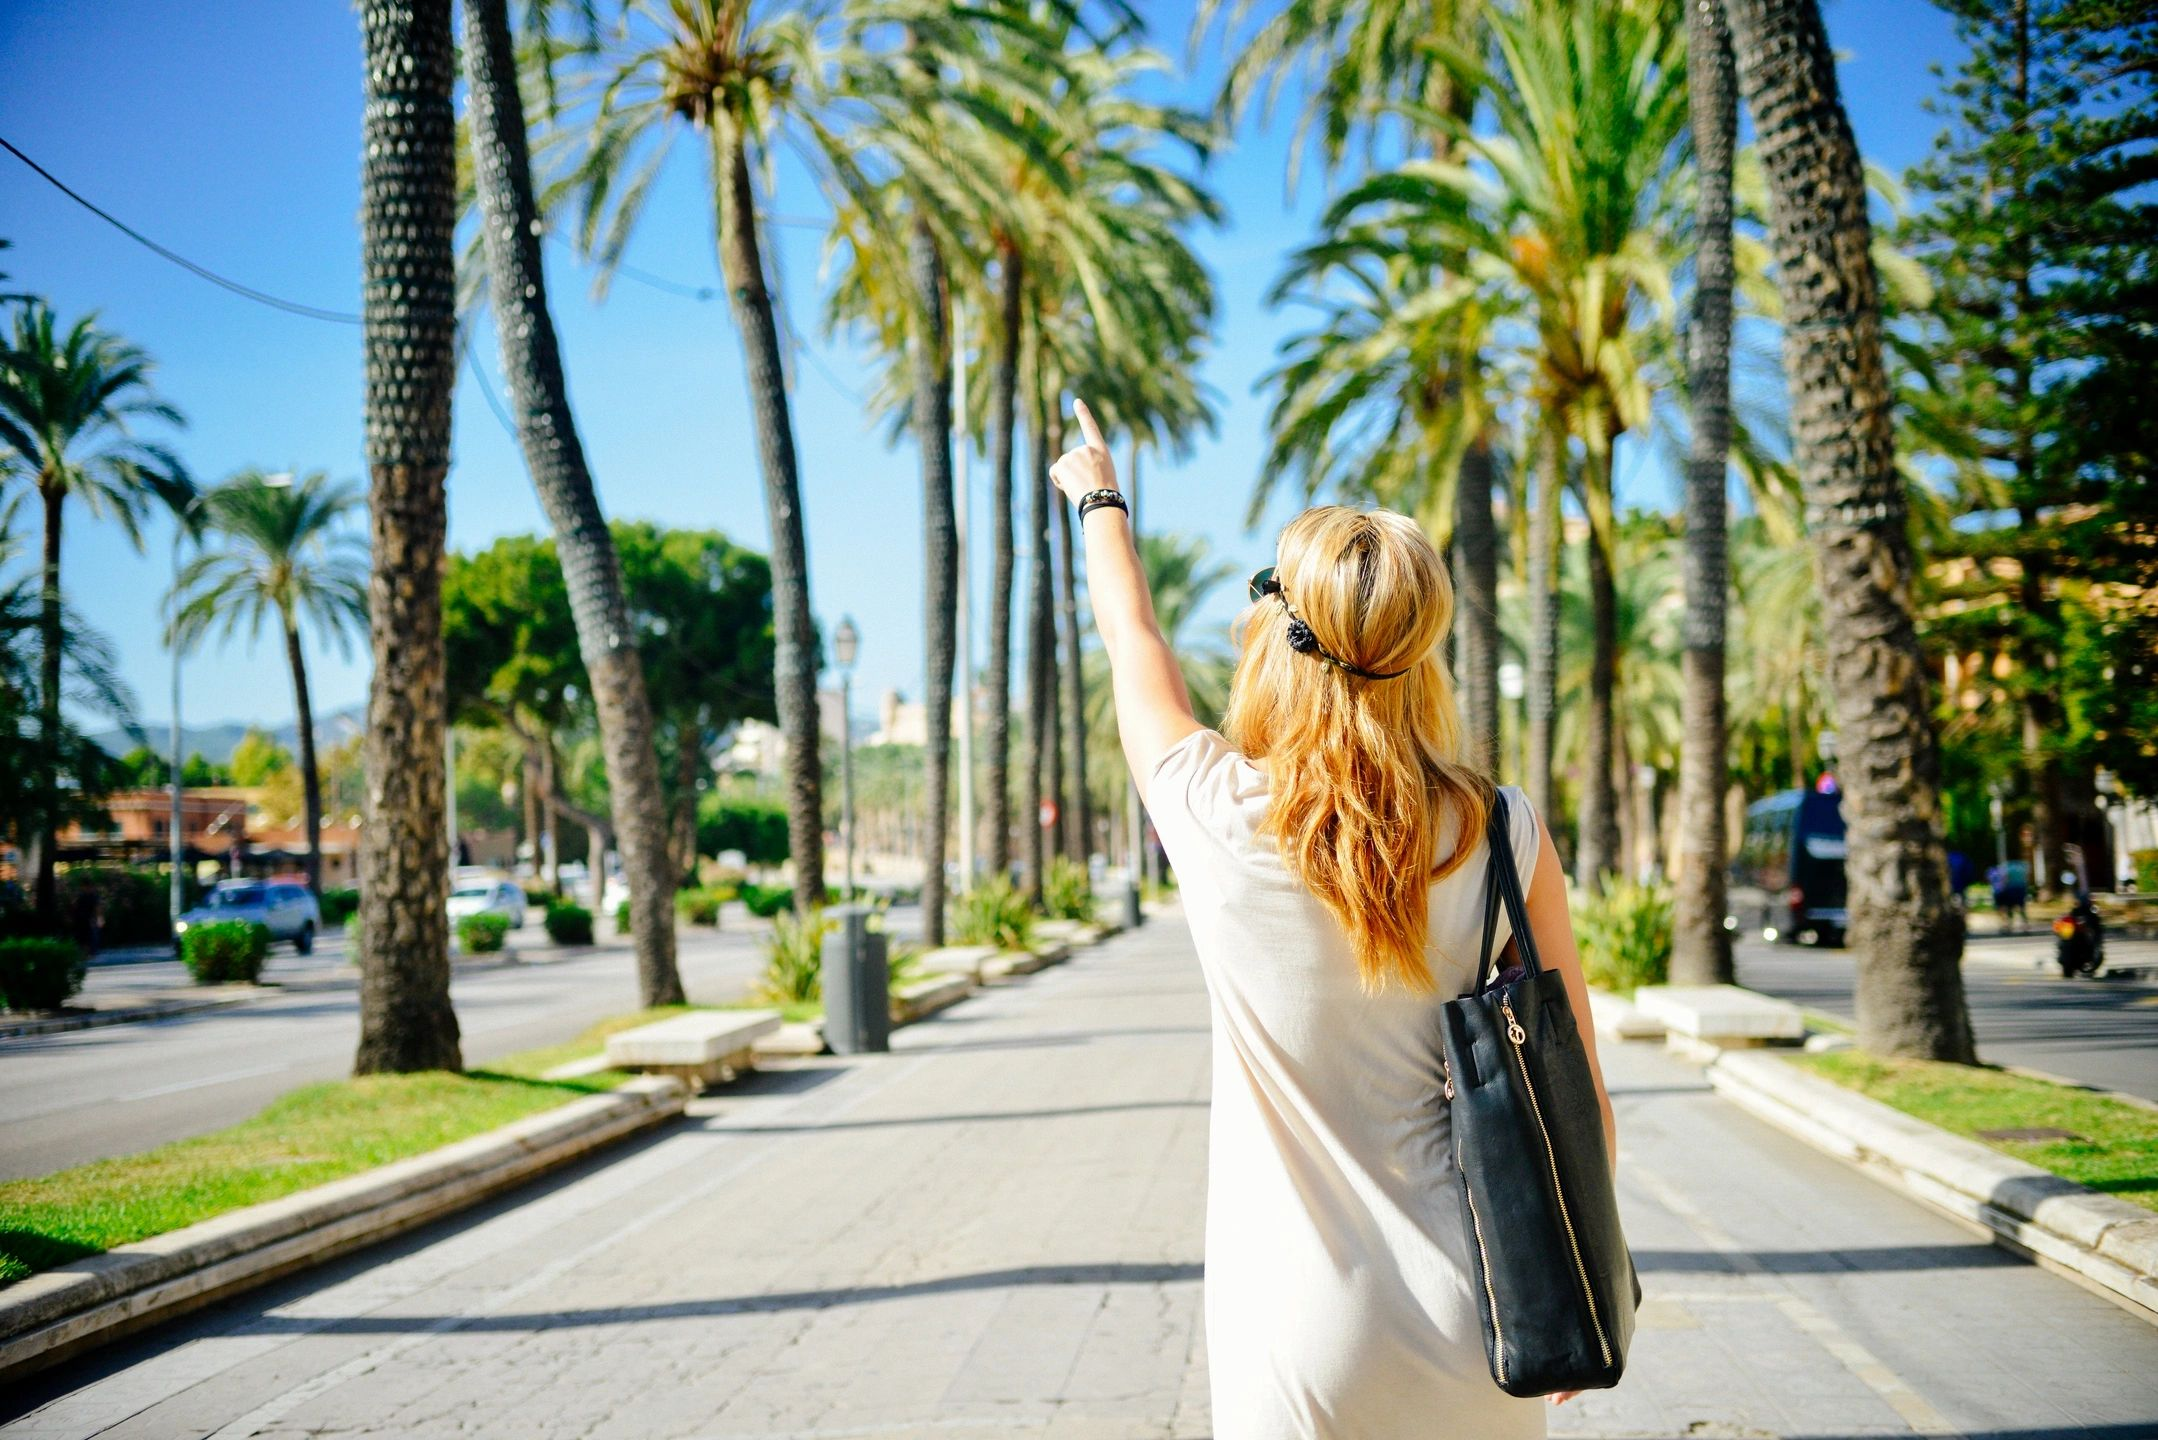 girl and palm trees